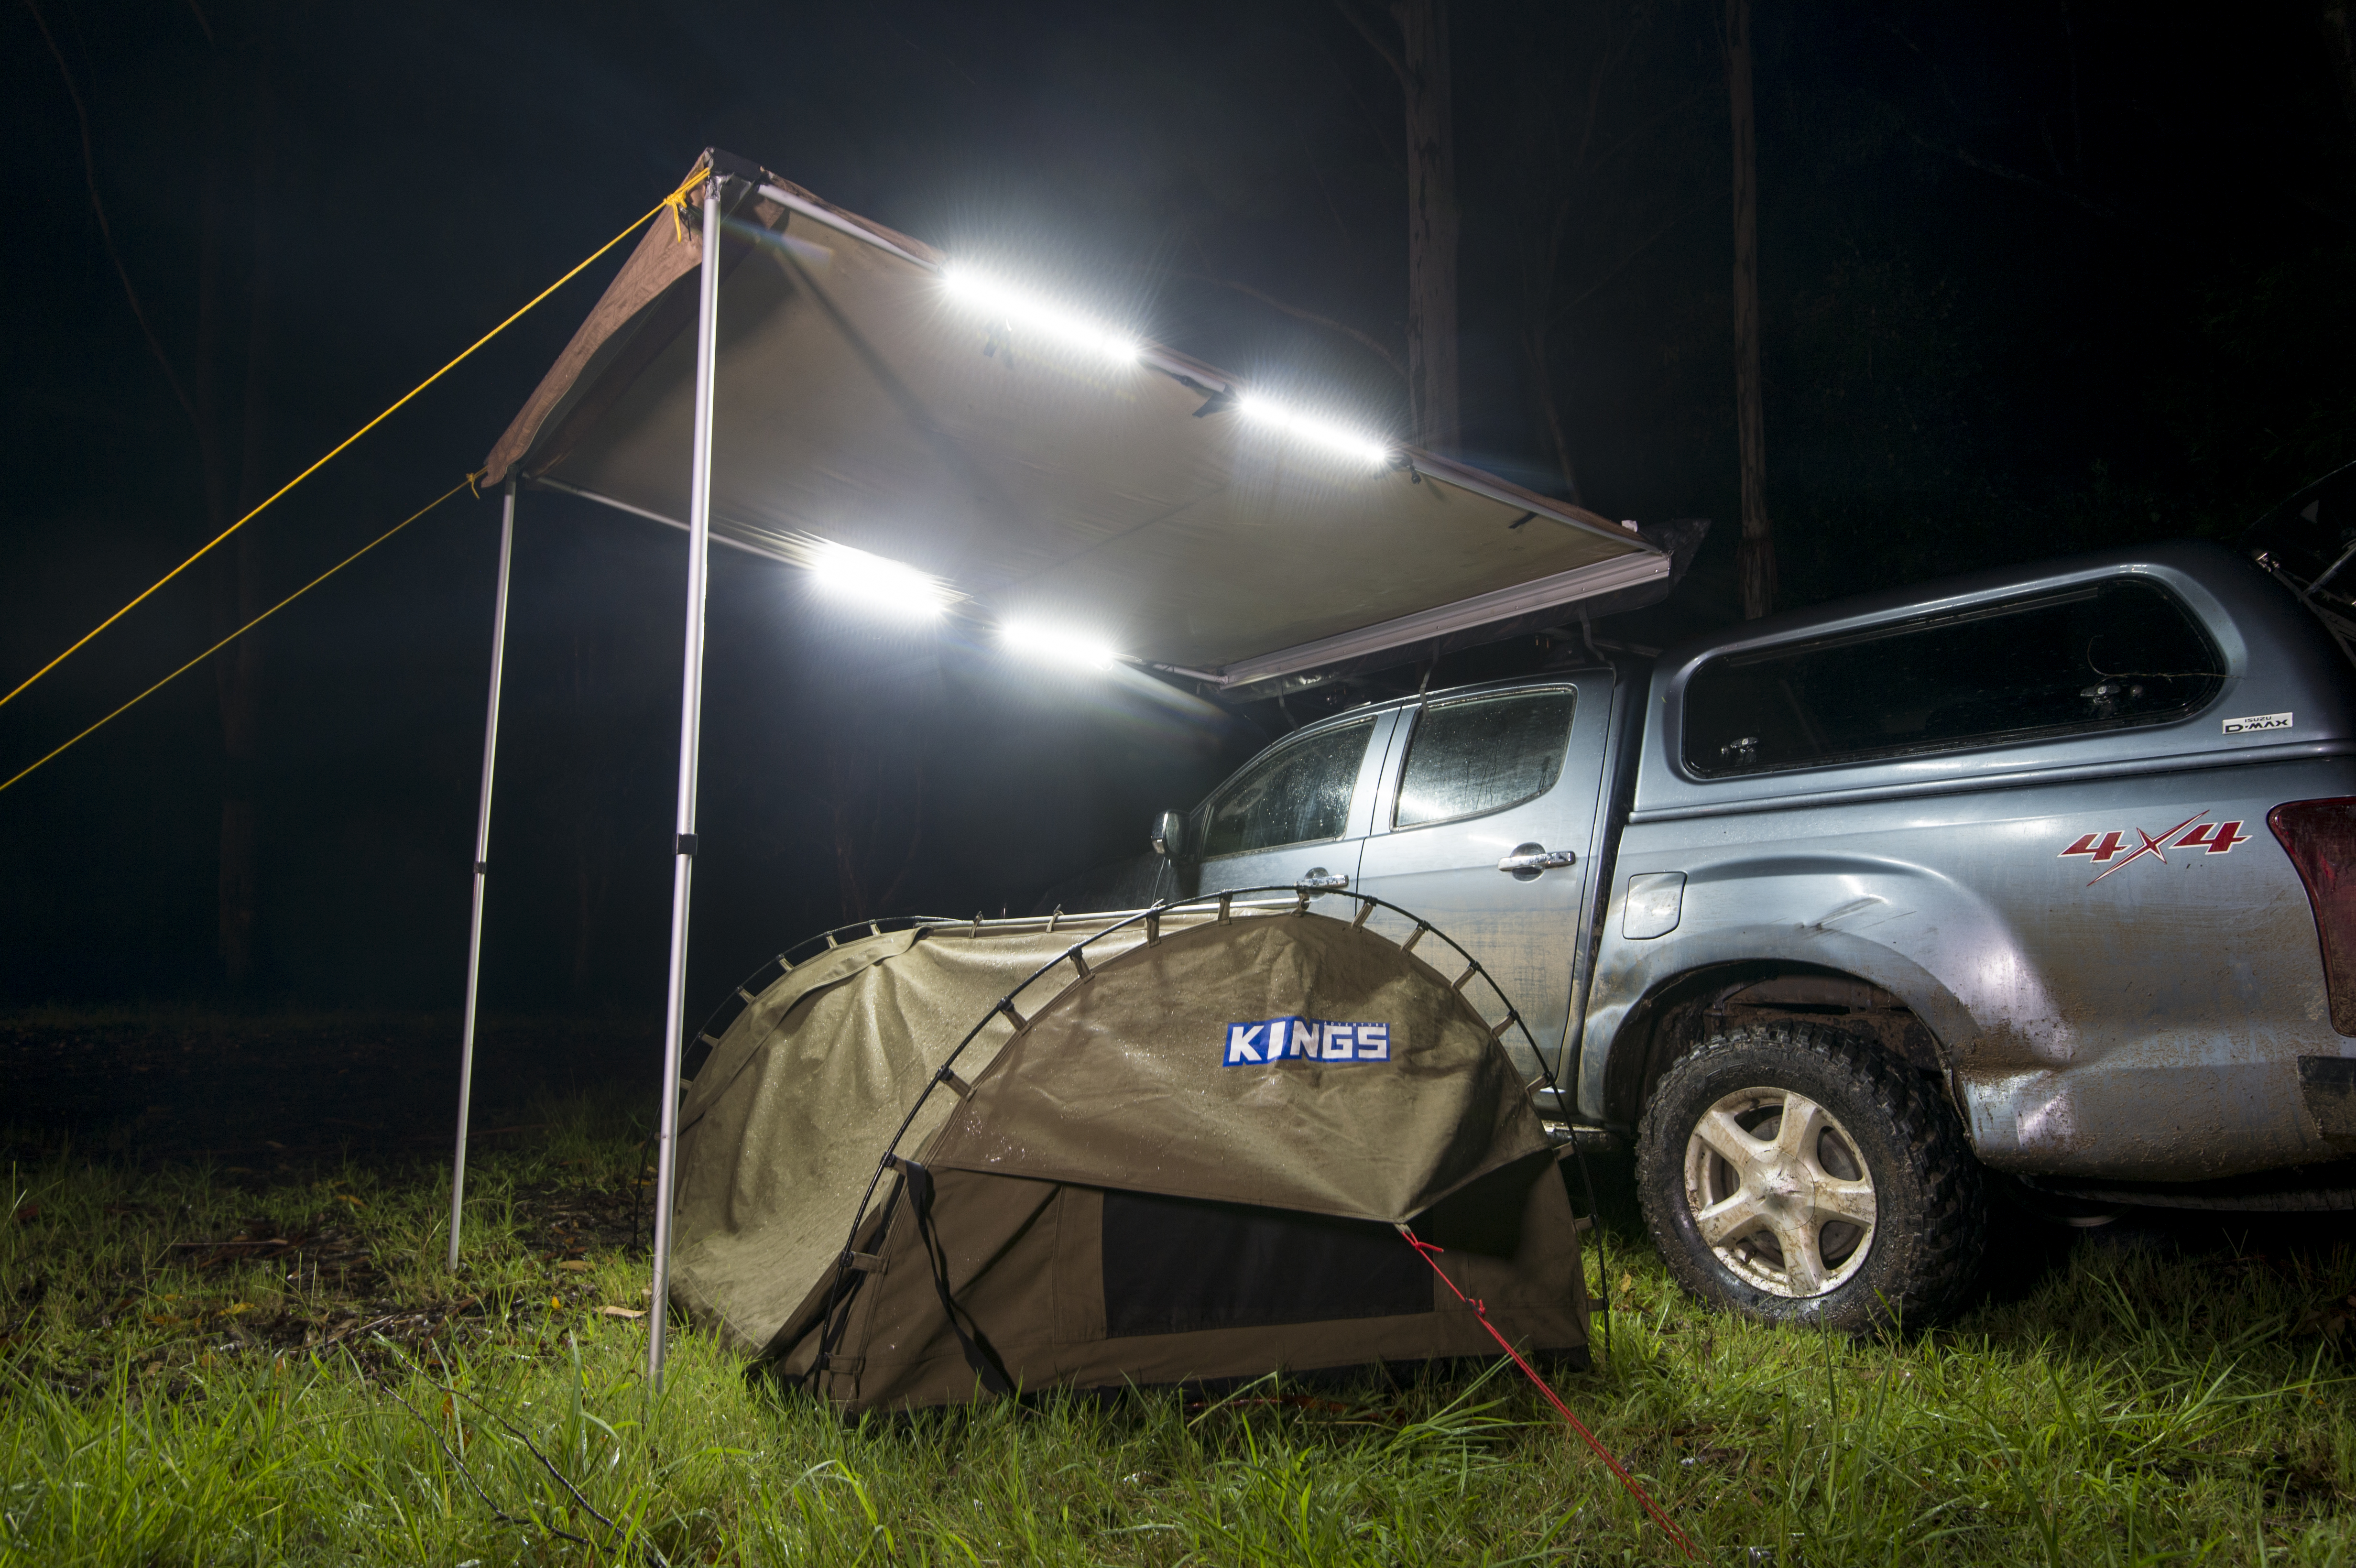 A Roof Top Tents have changed the way Aussies camp! - image ROB9382 on https://www.4wdsupacentre.com.au/news